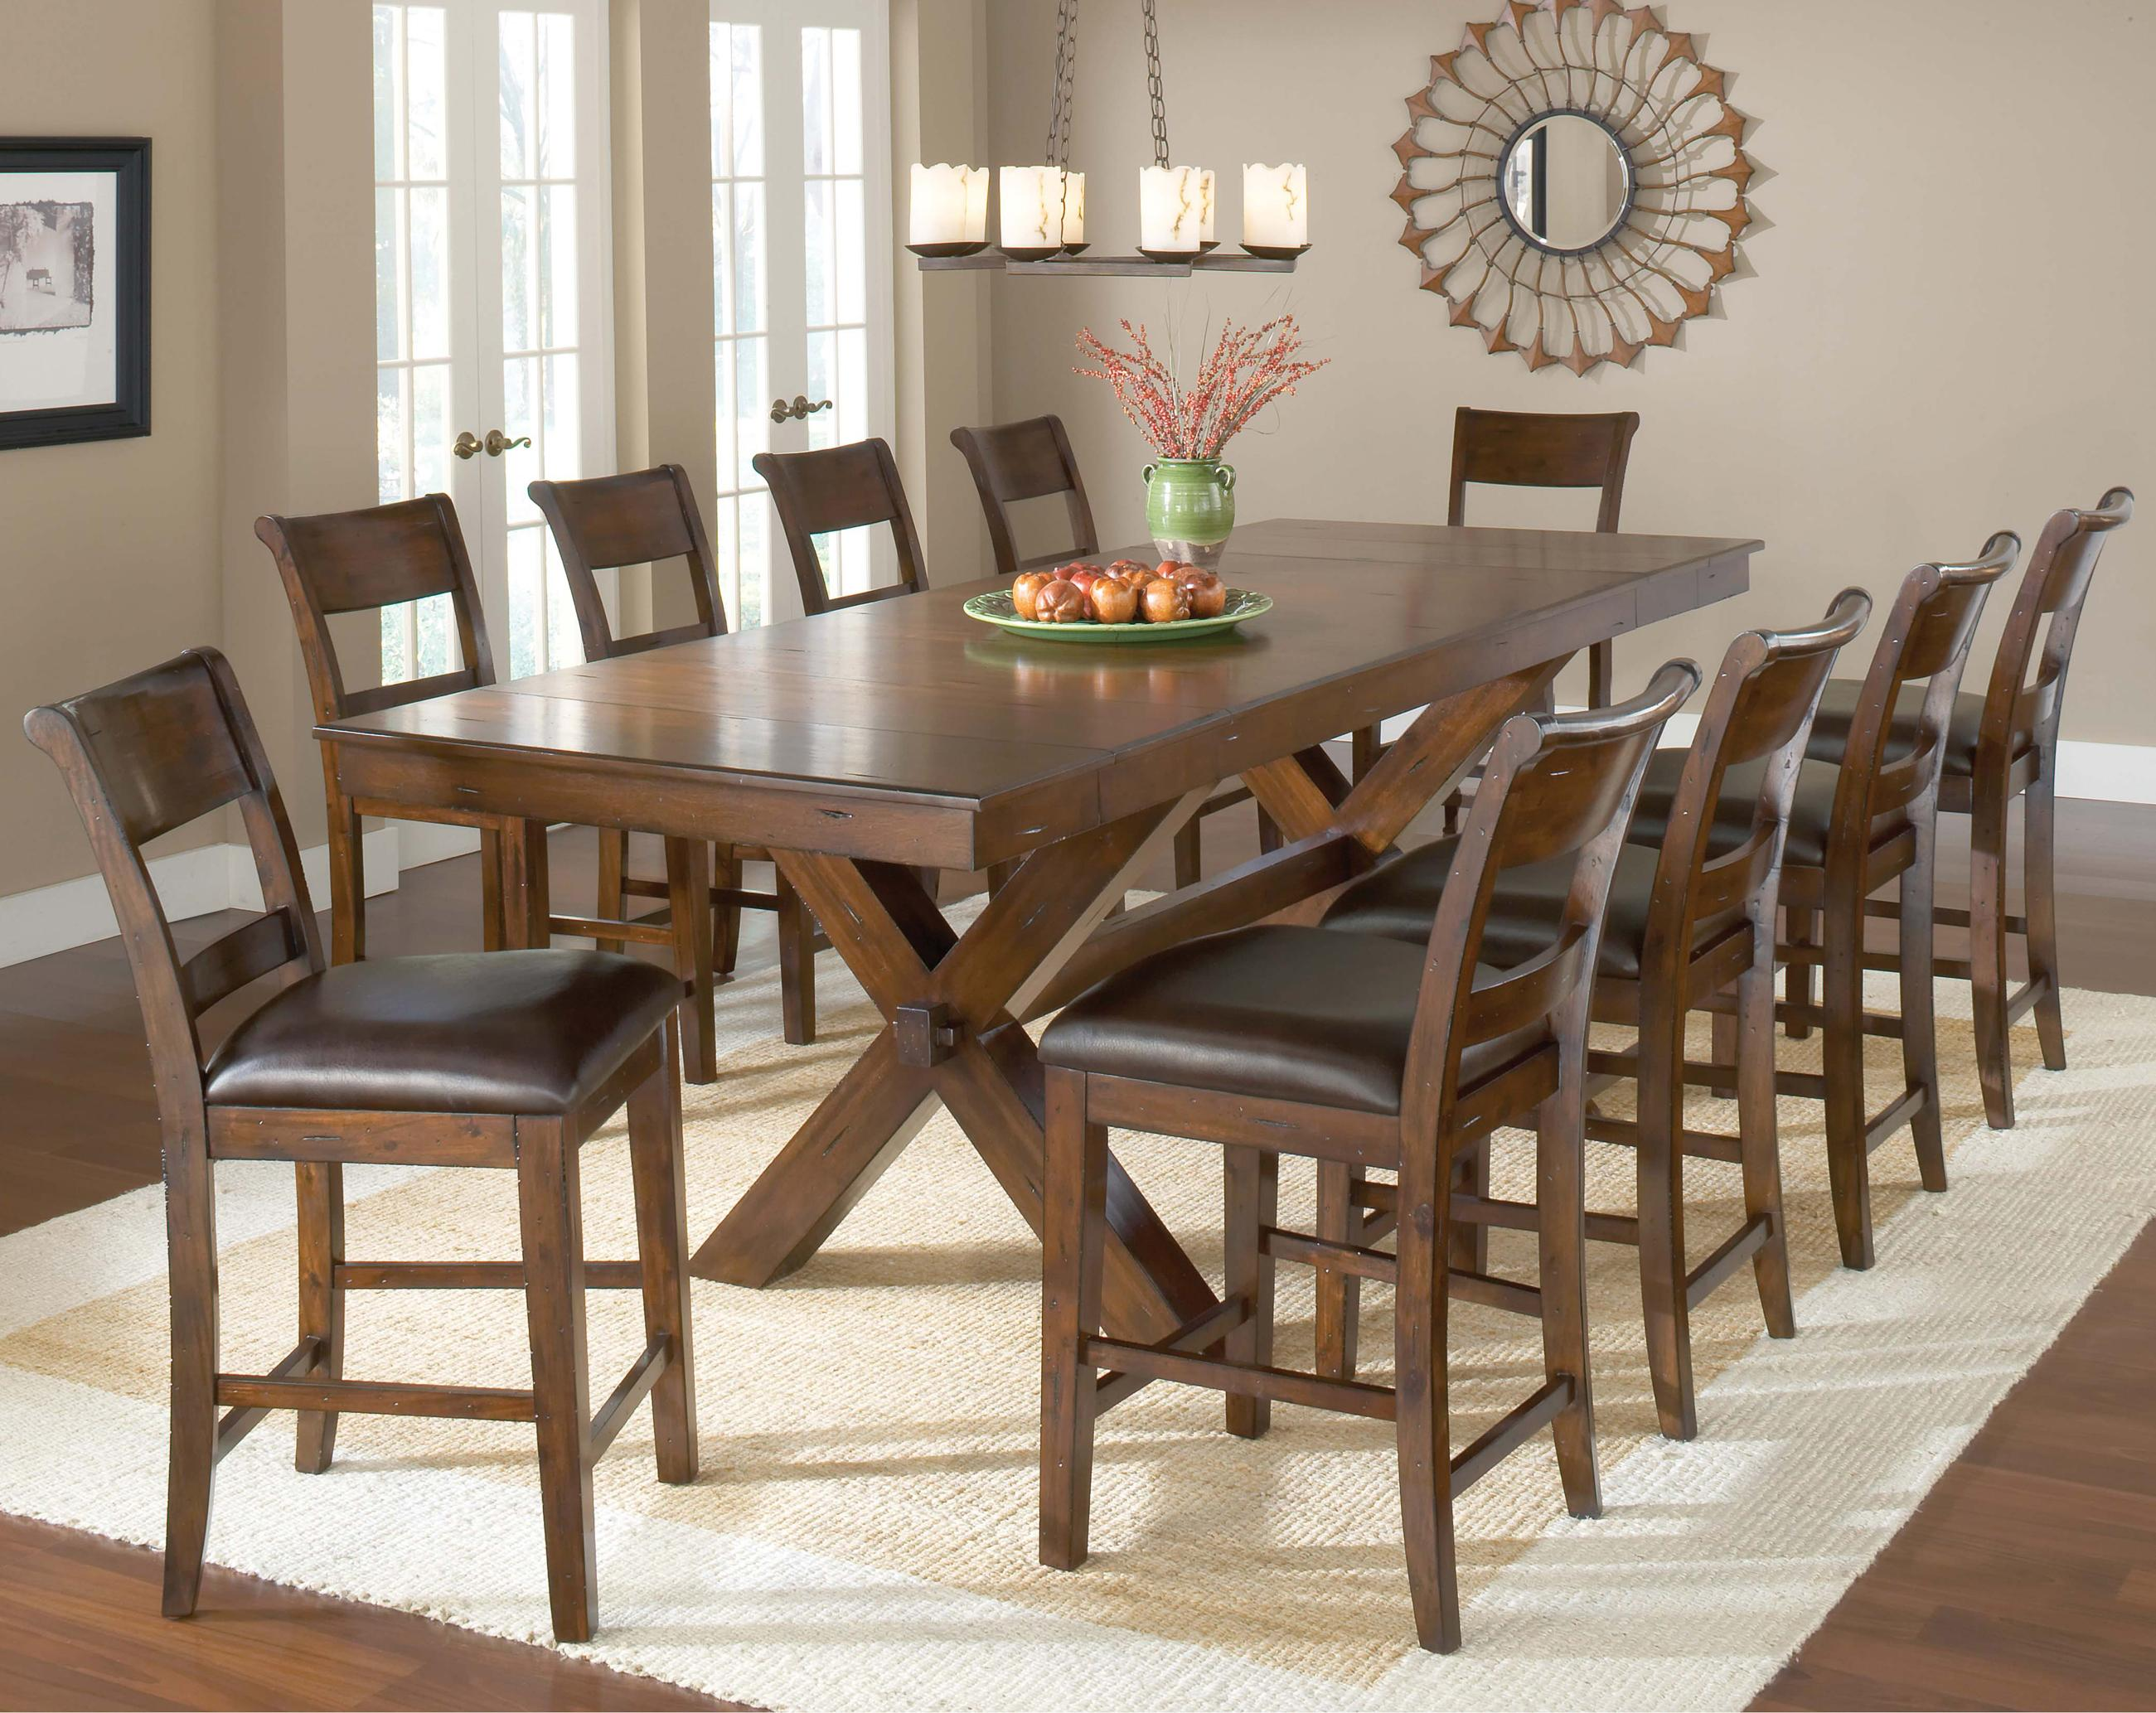 Hillsdale Park Avenue Counter Height Trestle Table | Boulevard Home  Furnishings | Pub Tables